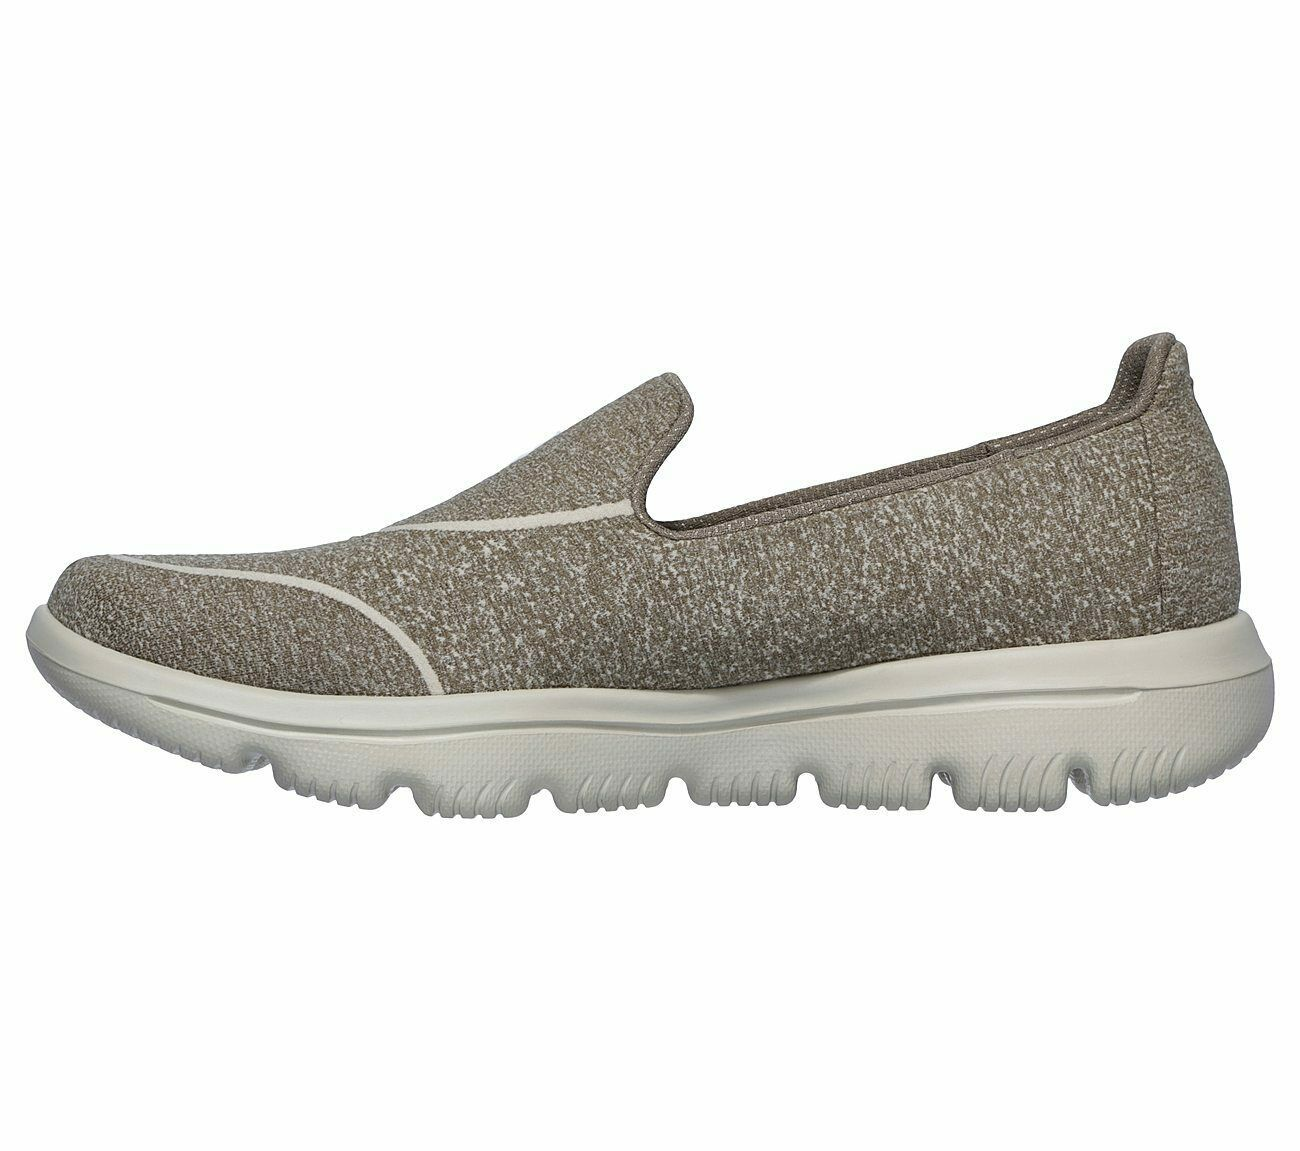 Skechers Shoes Taupe Go Walk Women Super Suck Soft Casual Slip On Comfort 15732 image 3